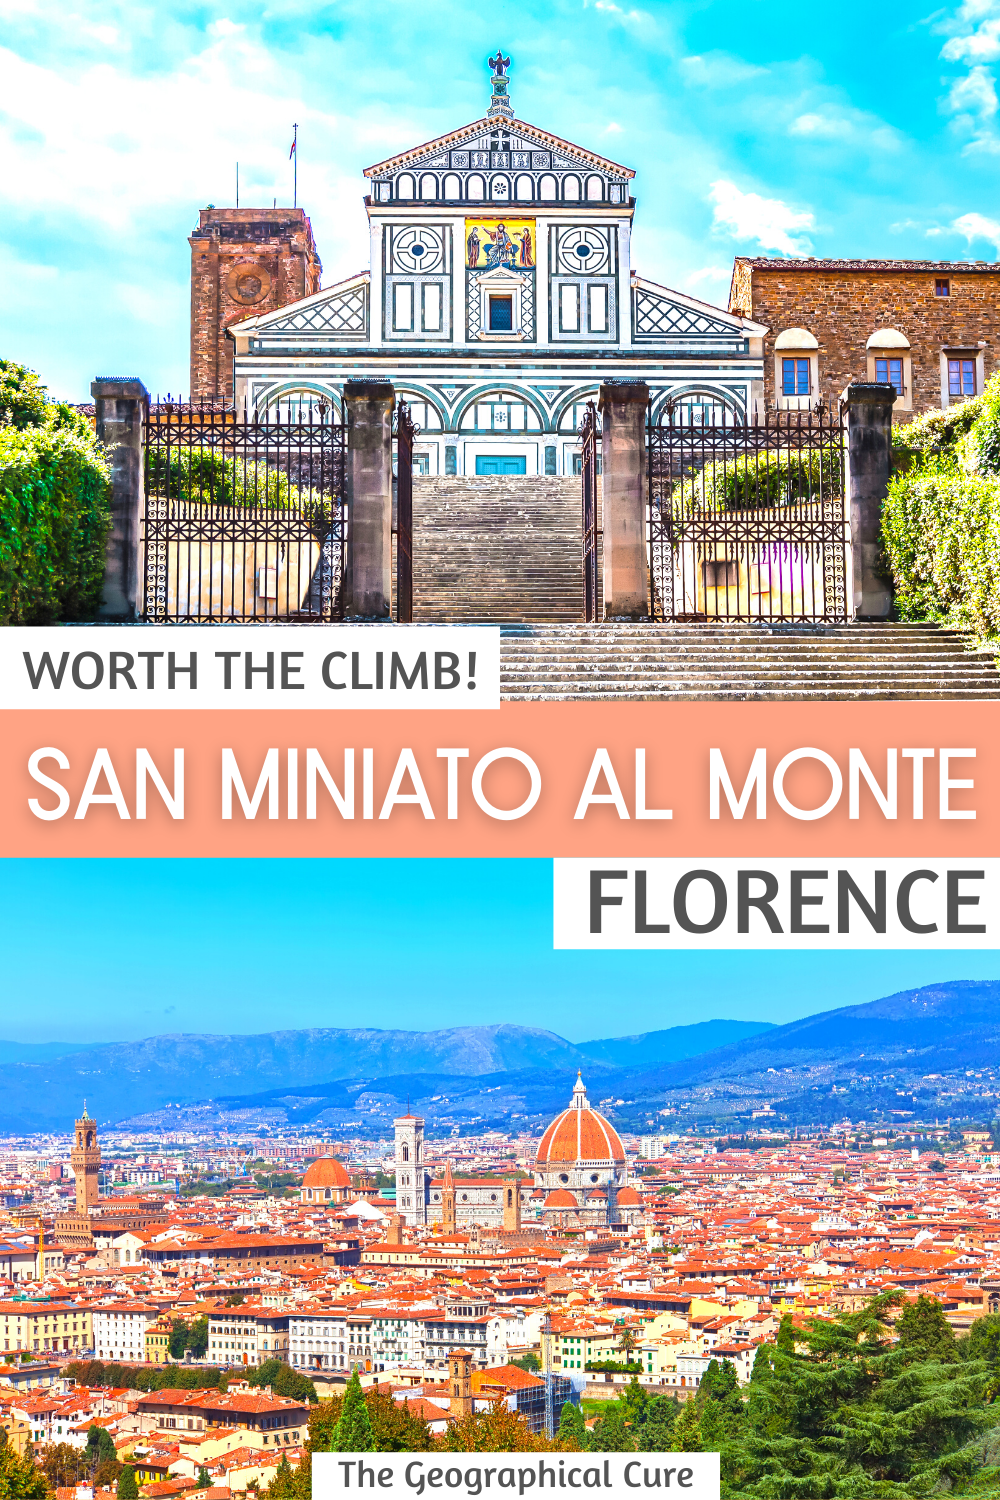 Guide to Florence's Crowning Glory, San Miniato al Monte